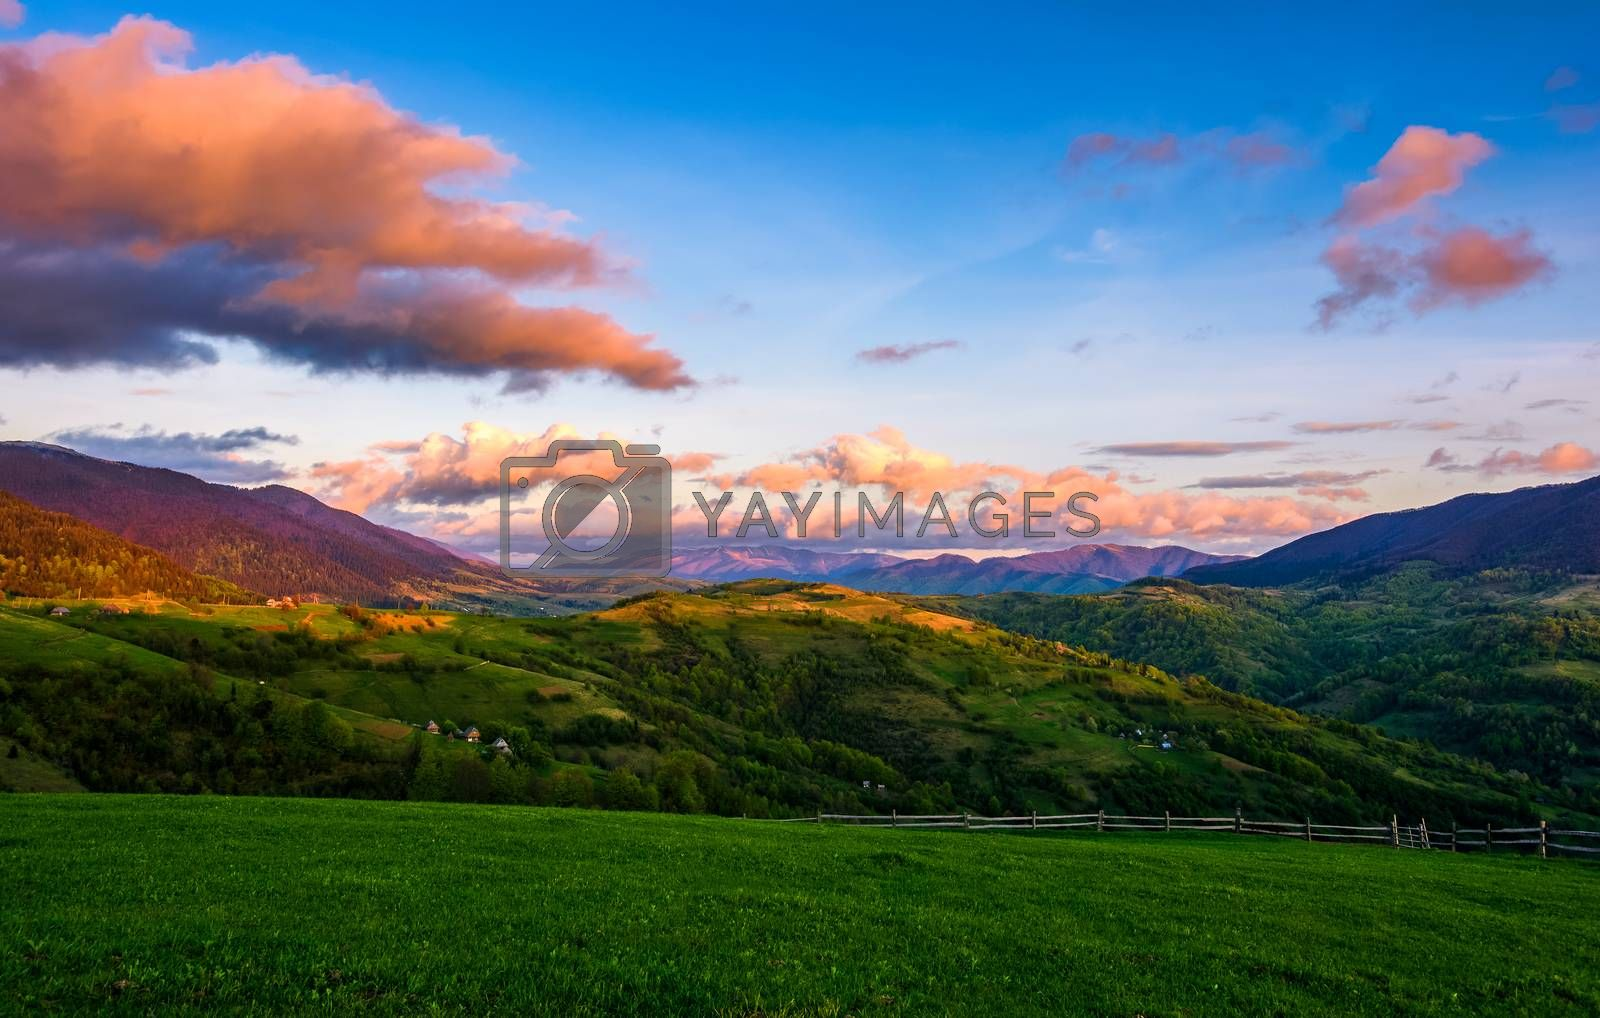 countryside landscape in mountains at sunset by Pellinni